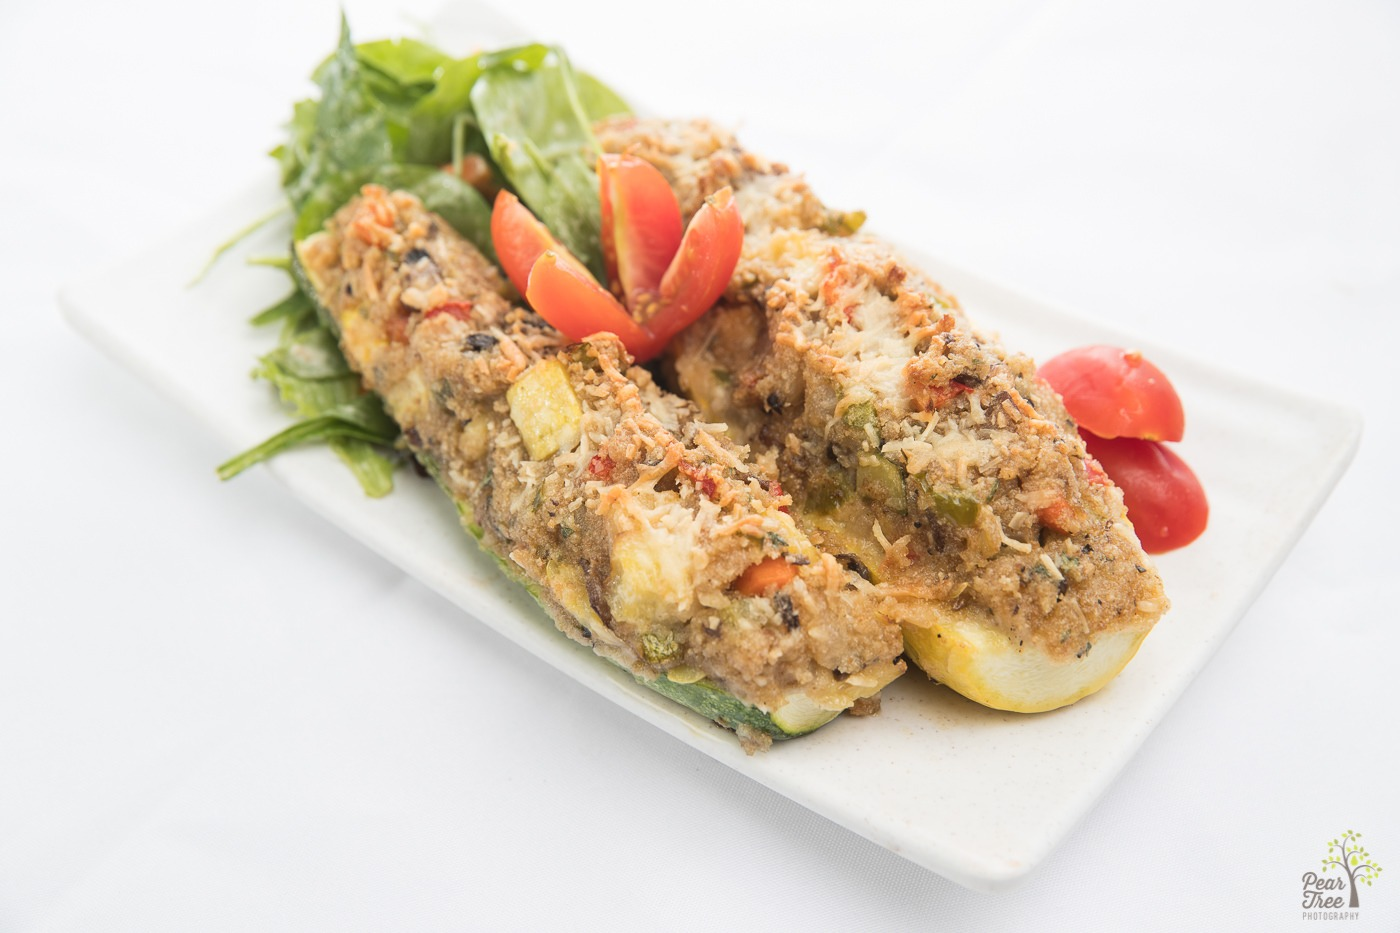 Delicious seafood stuff zucchini appetizer designed by Divine Taste of Heaven caterer.